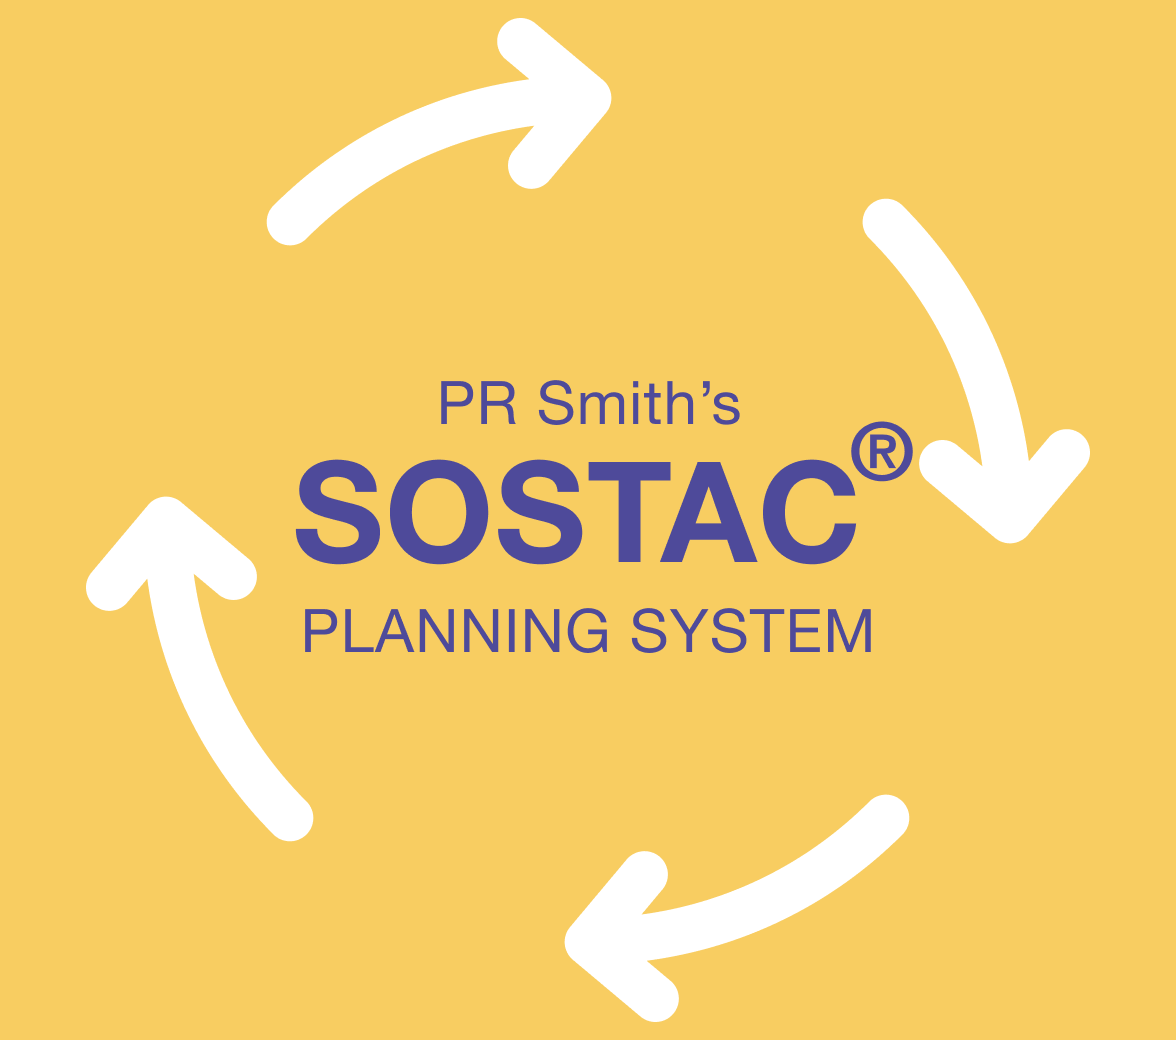 SOSTAC ® Marketing Model – Top Ranked Planning System